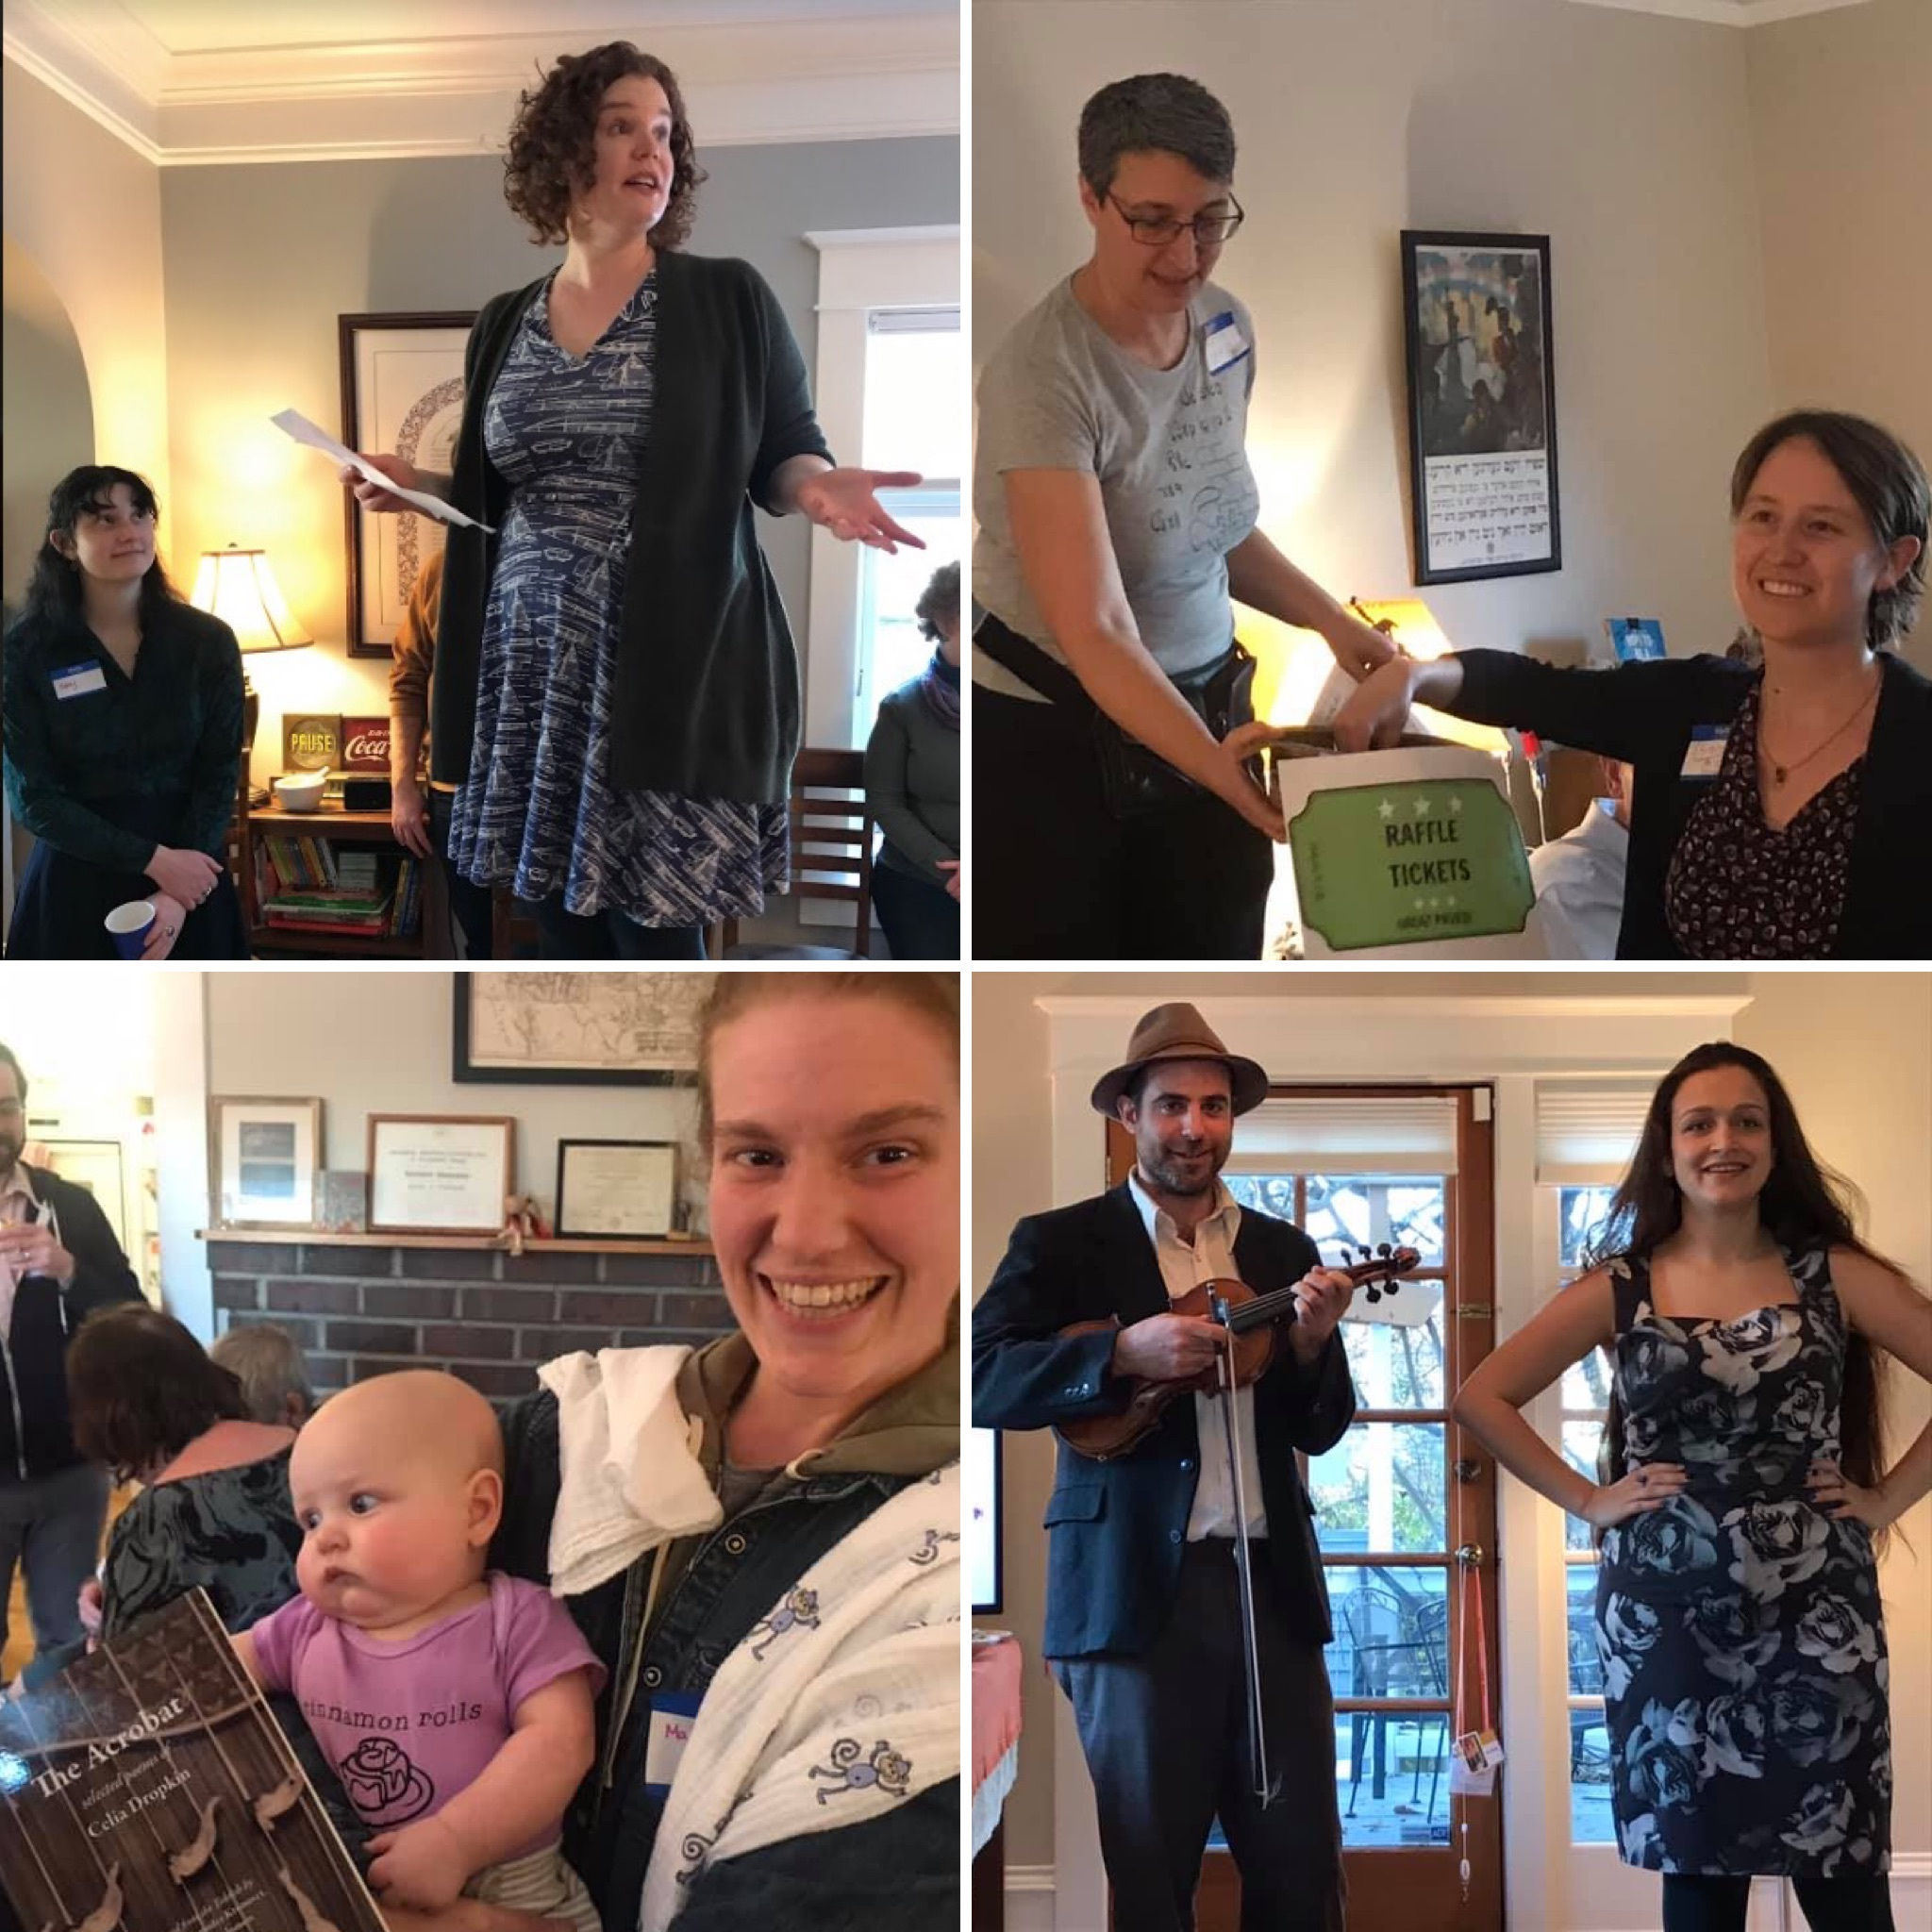 <p>At our Seattle party, clockwise from top left: editorial board member Sarah Zarrow explains the deal with <em>In geveb</em>; expert raffle organizer Faith Jones is assisted in the draw by Liora Halperin; Craig Judelman and Sasha Lurje perform; and young readers have their eyes opened by Celia&nbsp;Dropkin.</p>